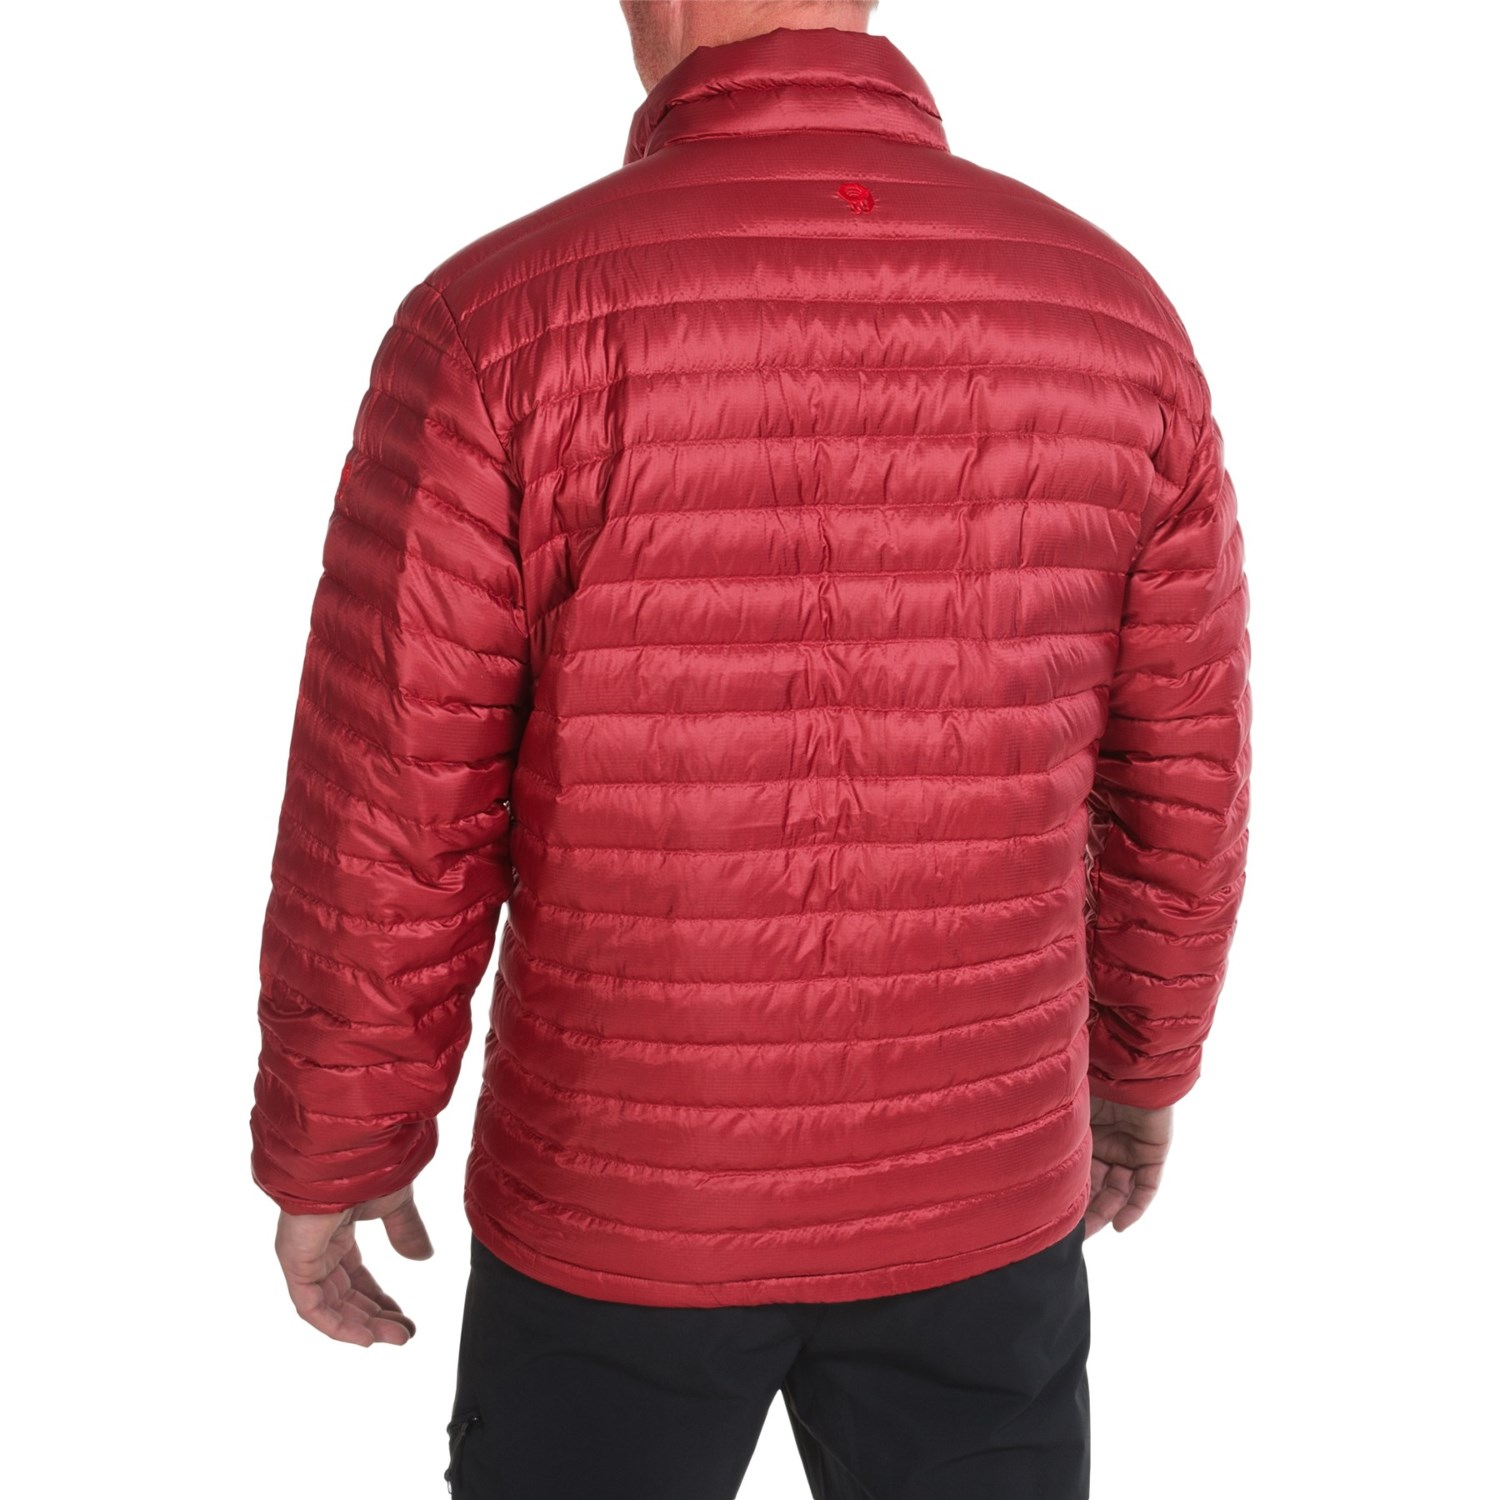 29e2fd84d3c mountain-hardwear-nitrous-qshield-down-jacket-800-fill-power-for-men~a~7793f 2~1500. 1.jpg